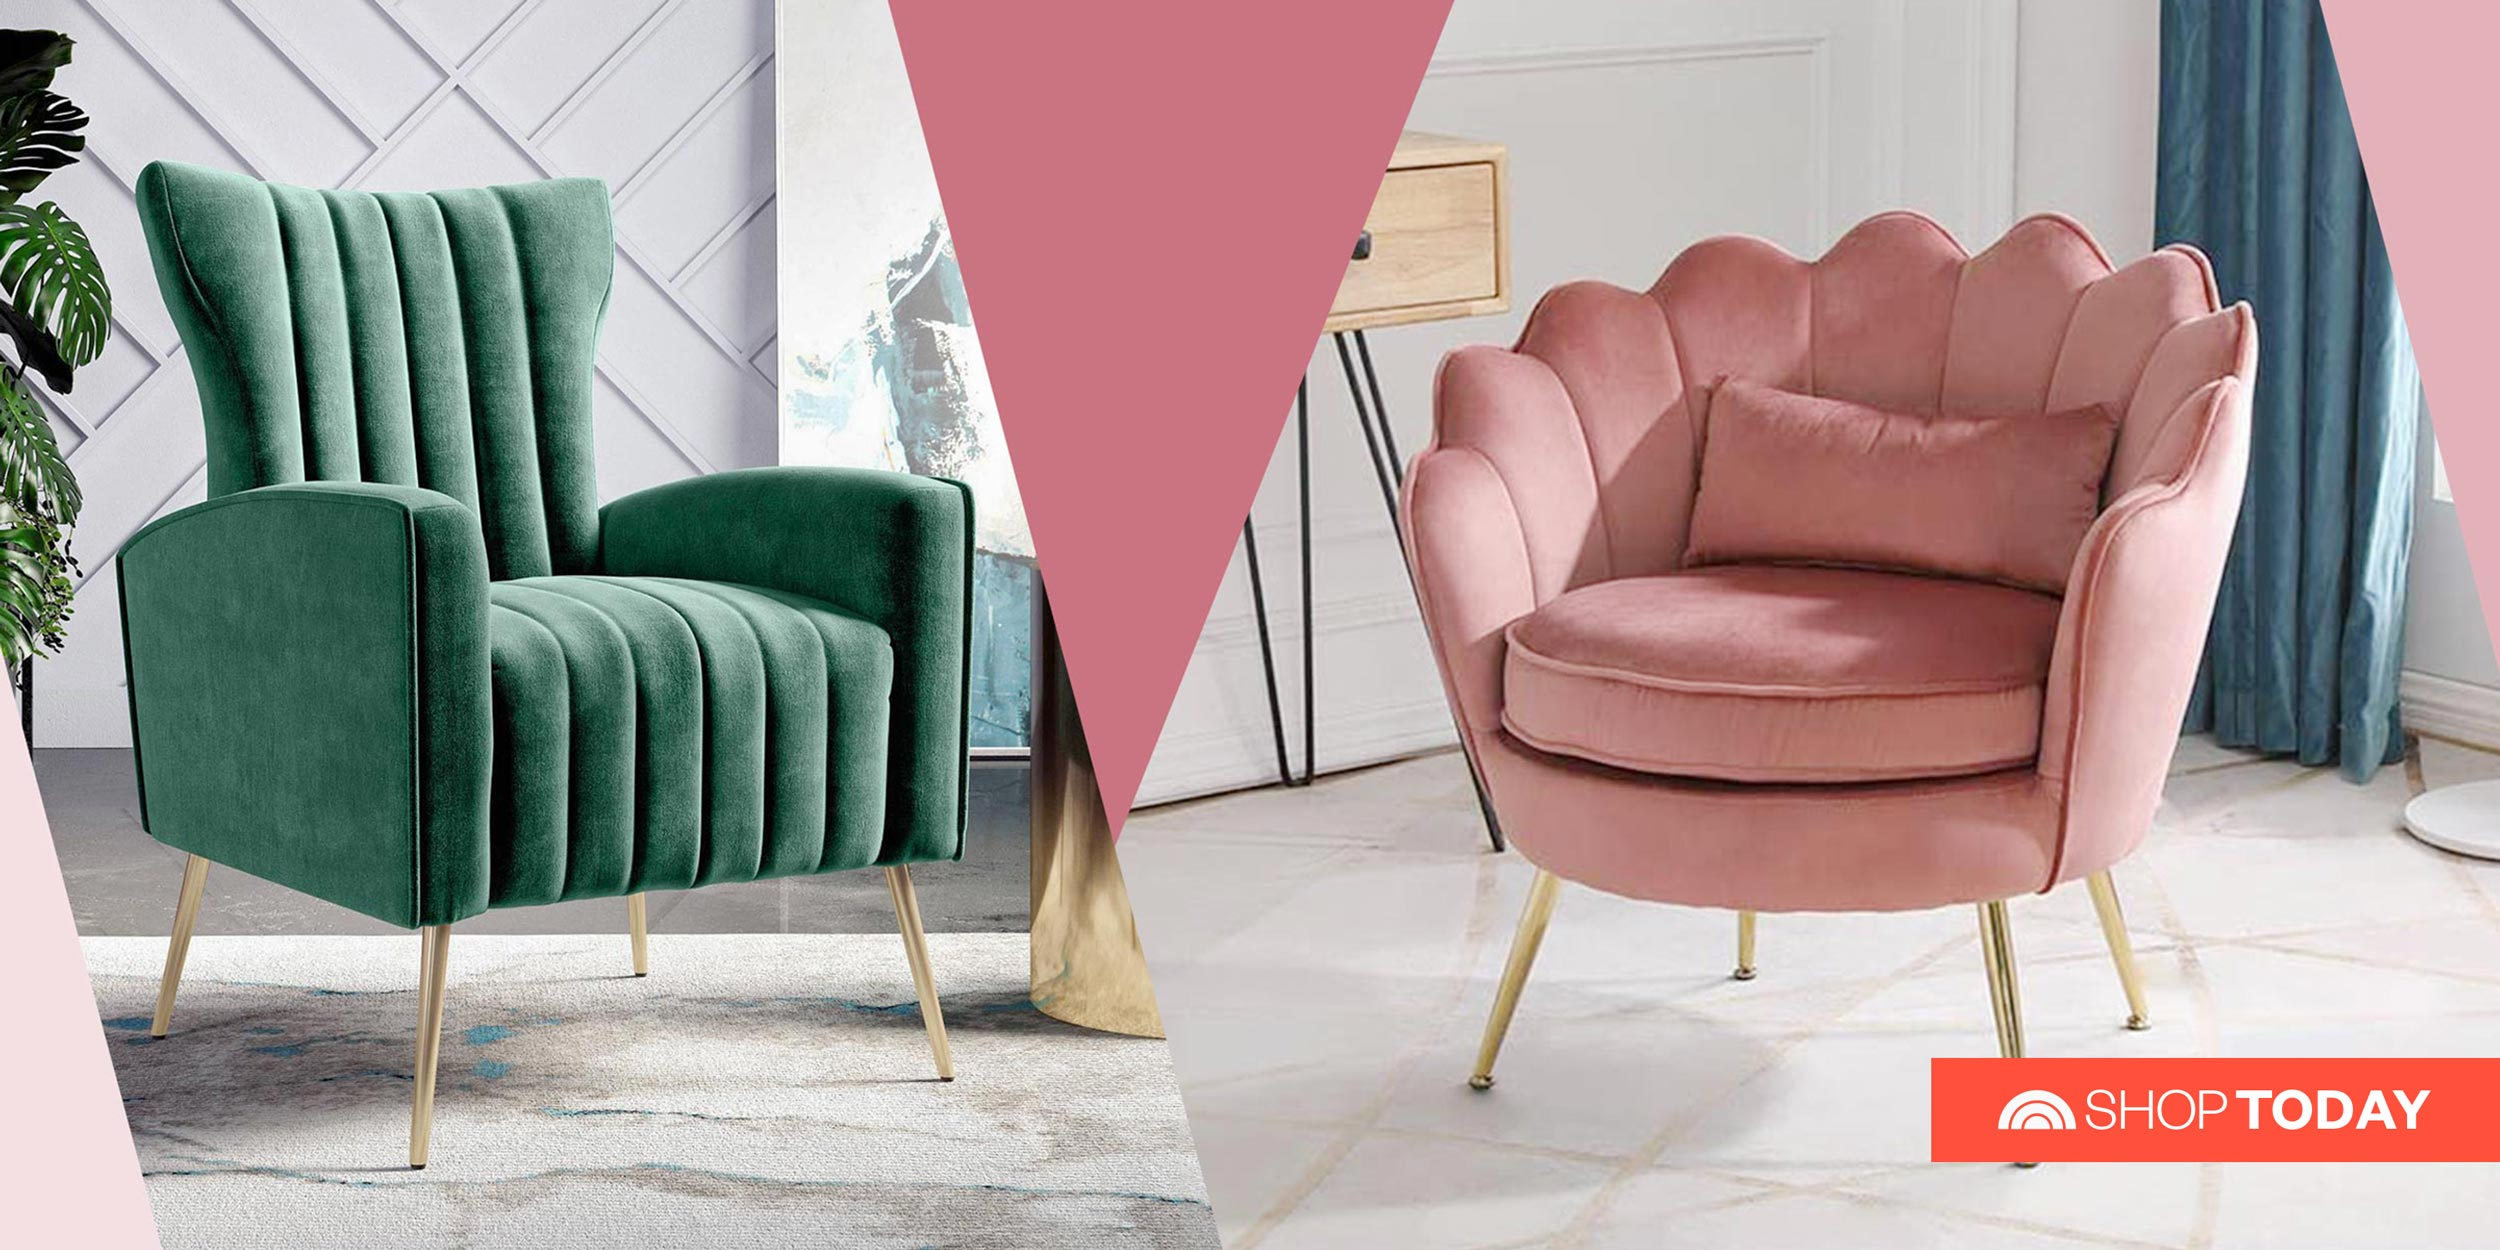 14 Best Accent Chairs To Spruce Up Your Space In 2021 Today